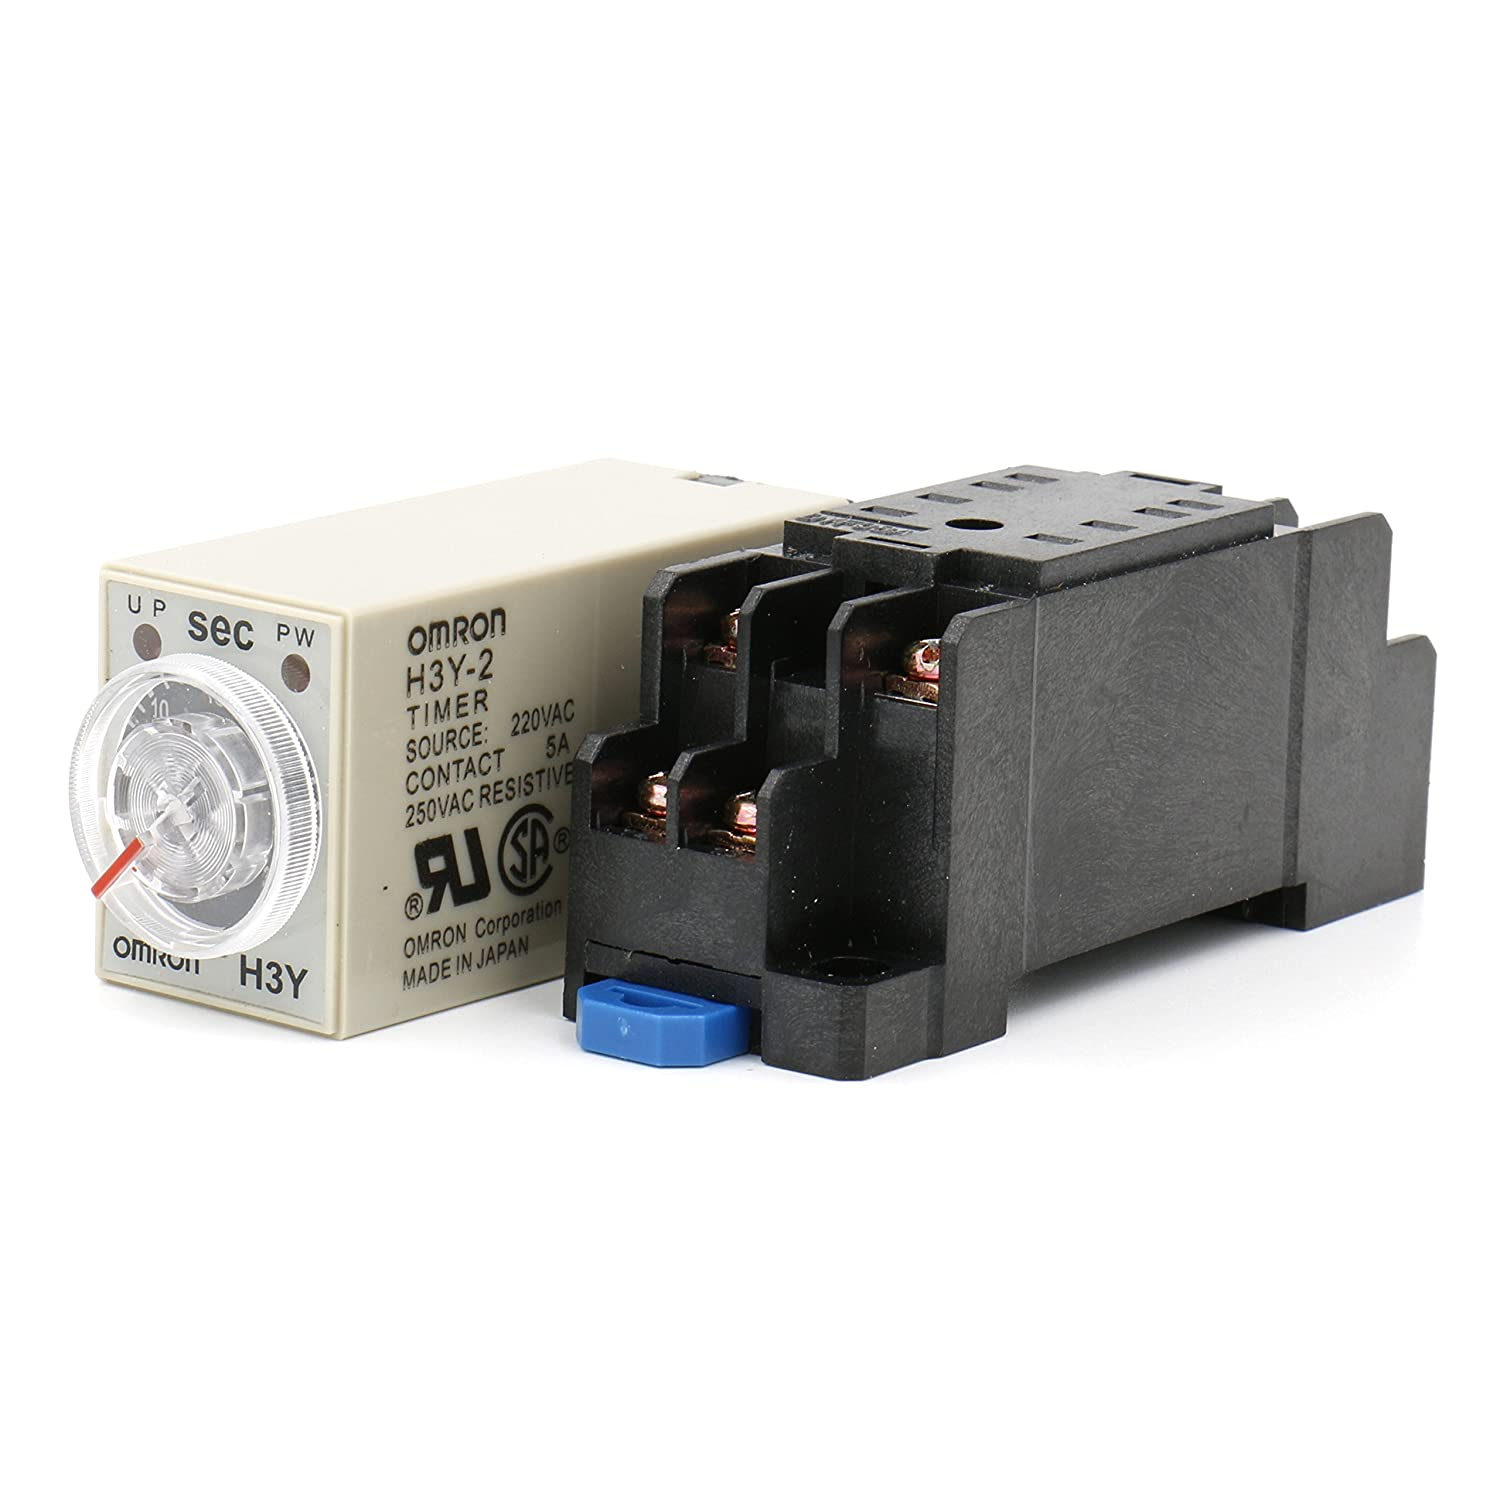 Heschen Timer Delay Relay H3Y-2 220VAC 0-5 Seconds 250VAC 5A 8Pin terminal DPDT with DYF08 35mm DIN Rail Socket Base Heschen Electric Co.Ltd H3Y-2-220V-5S